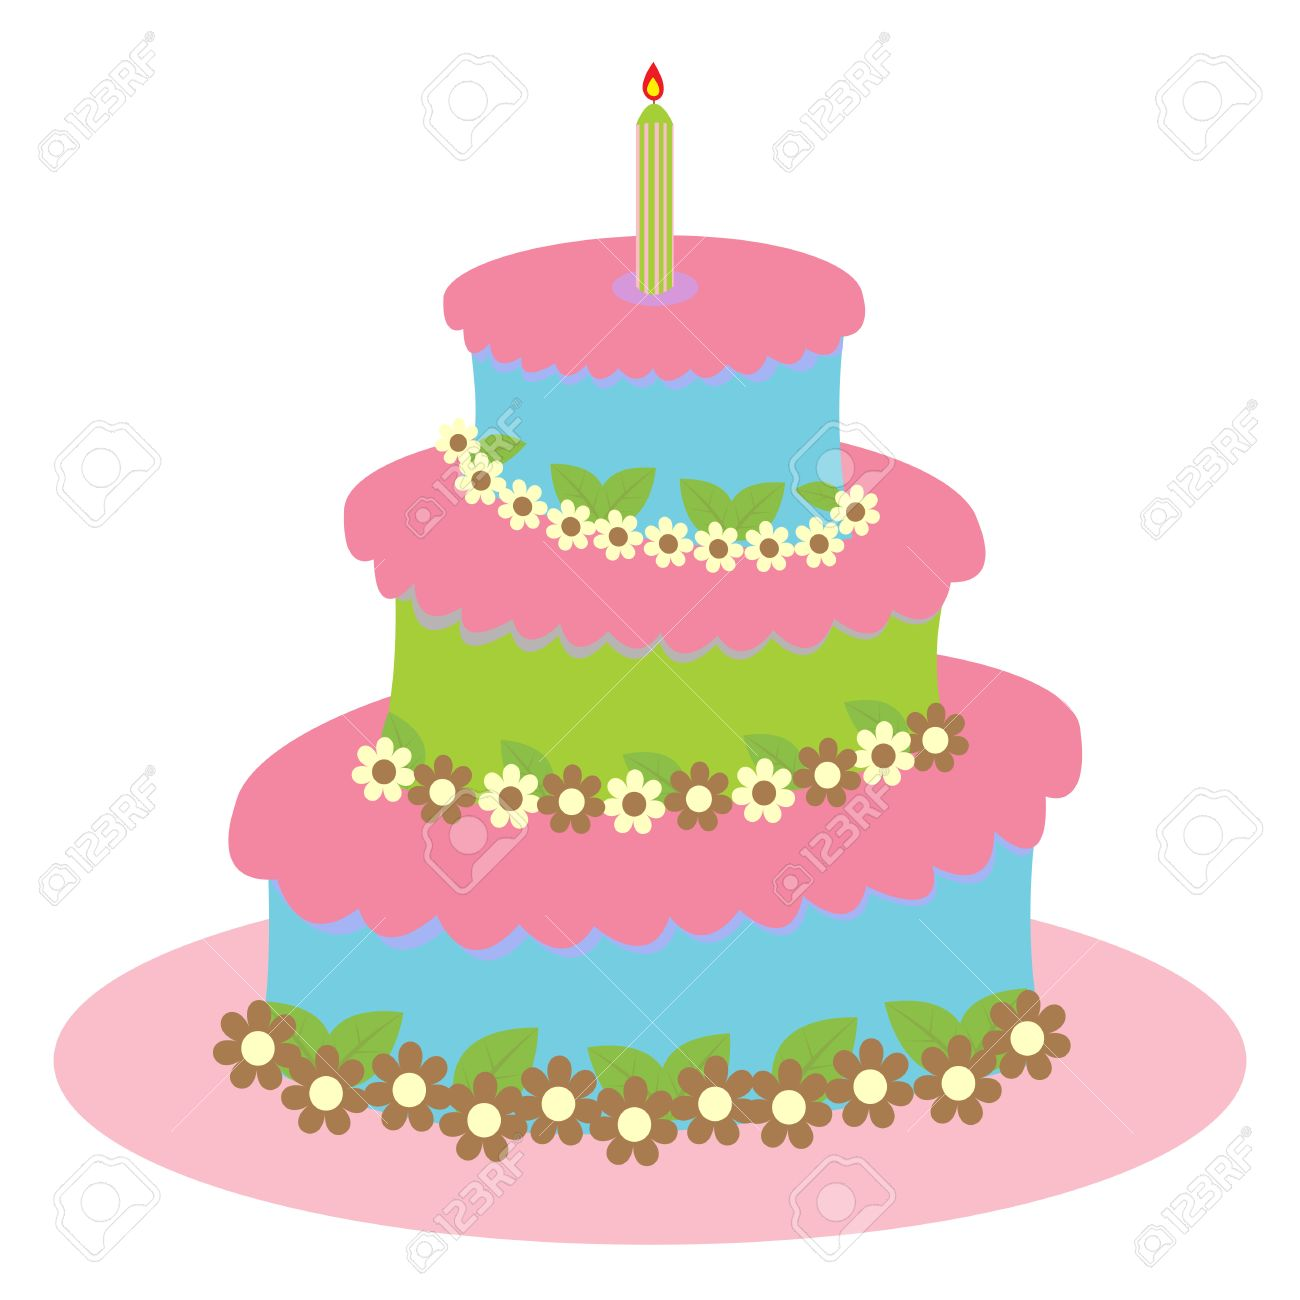 Big Round Birthday Cake For A Girl Isolated On White Royalty Free